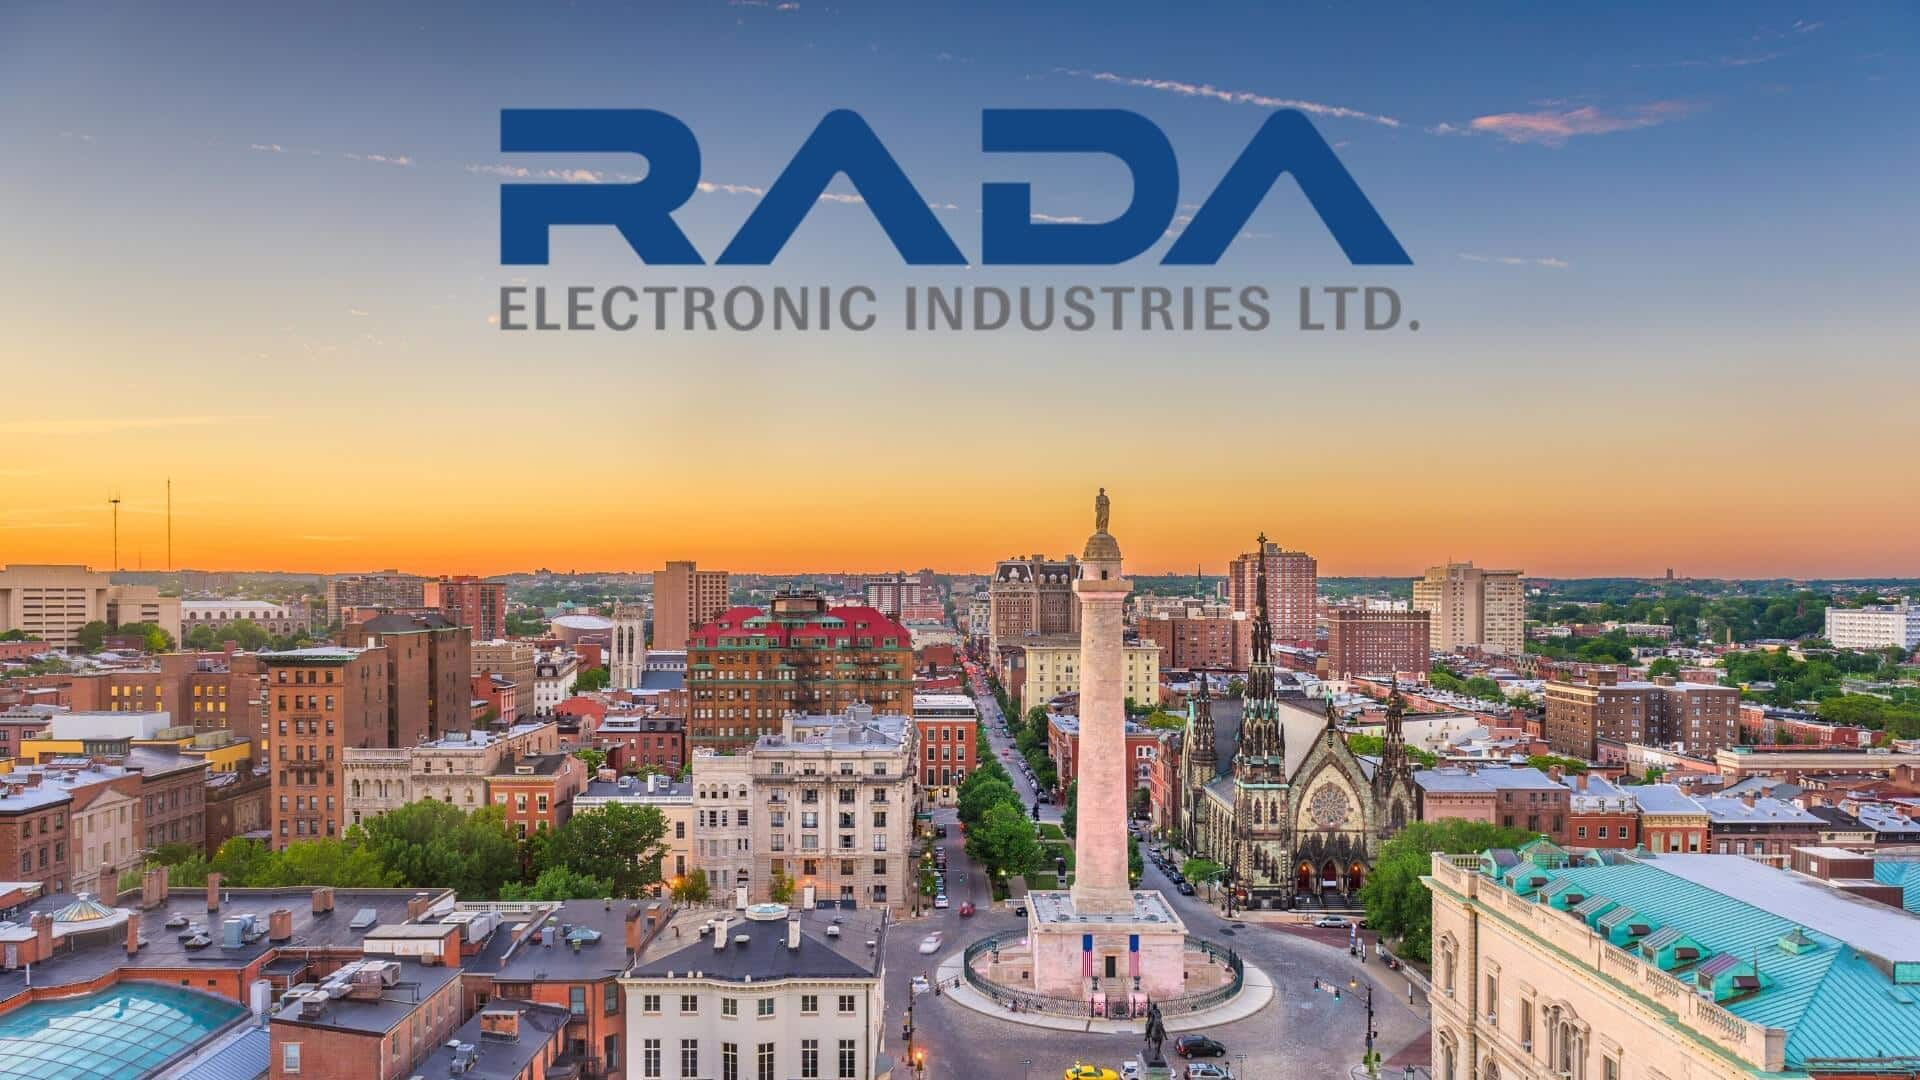 RADA Establish New U.S. Headquarters and Manufacturing Facility